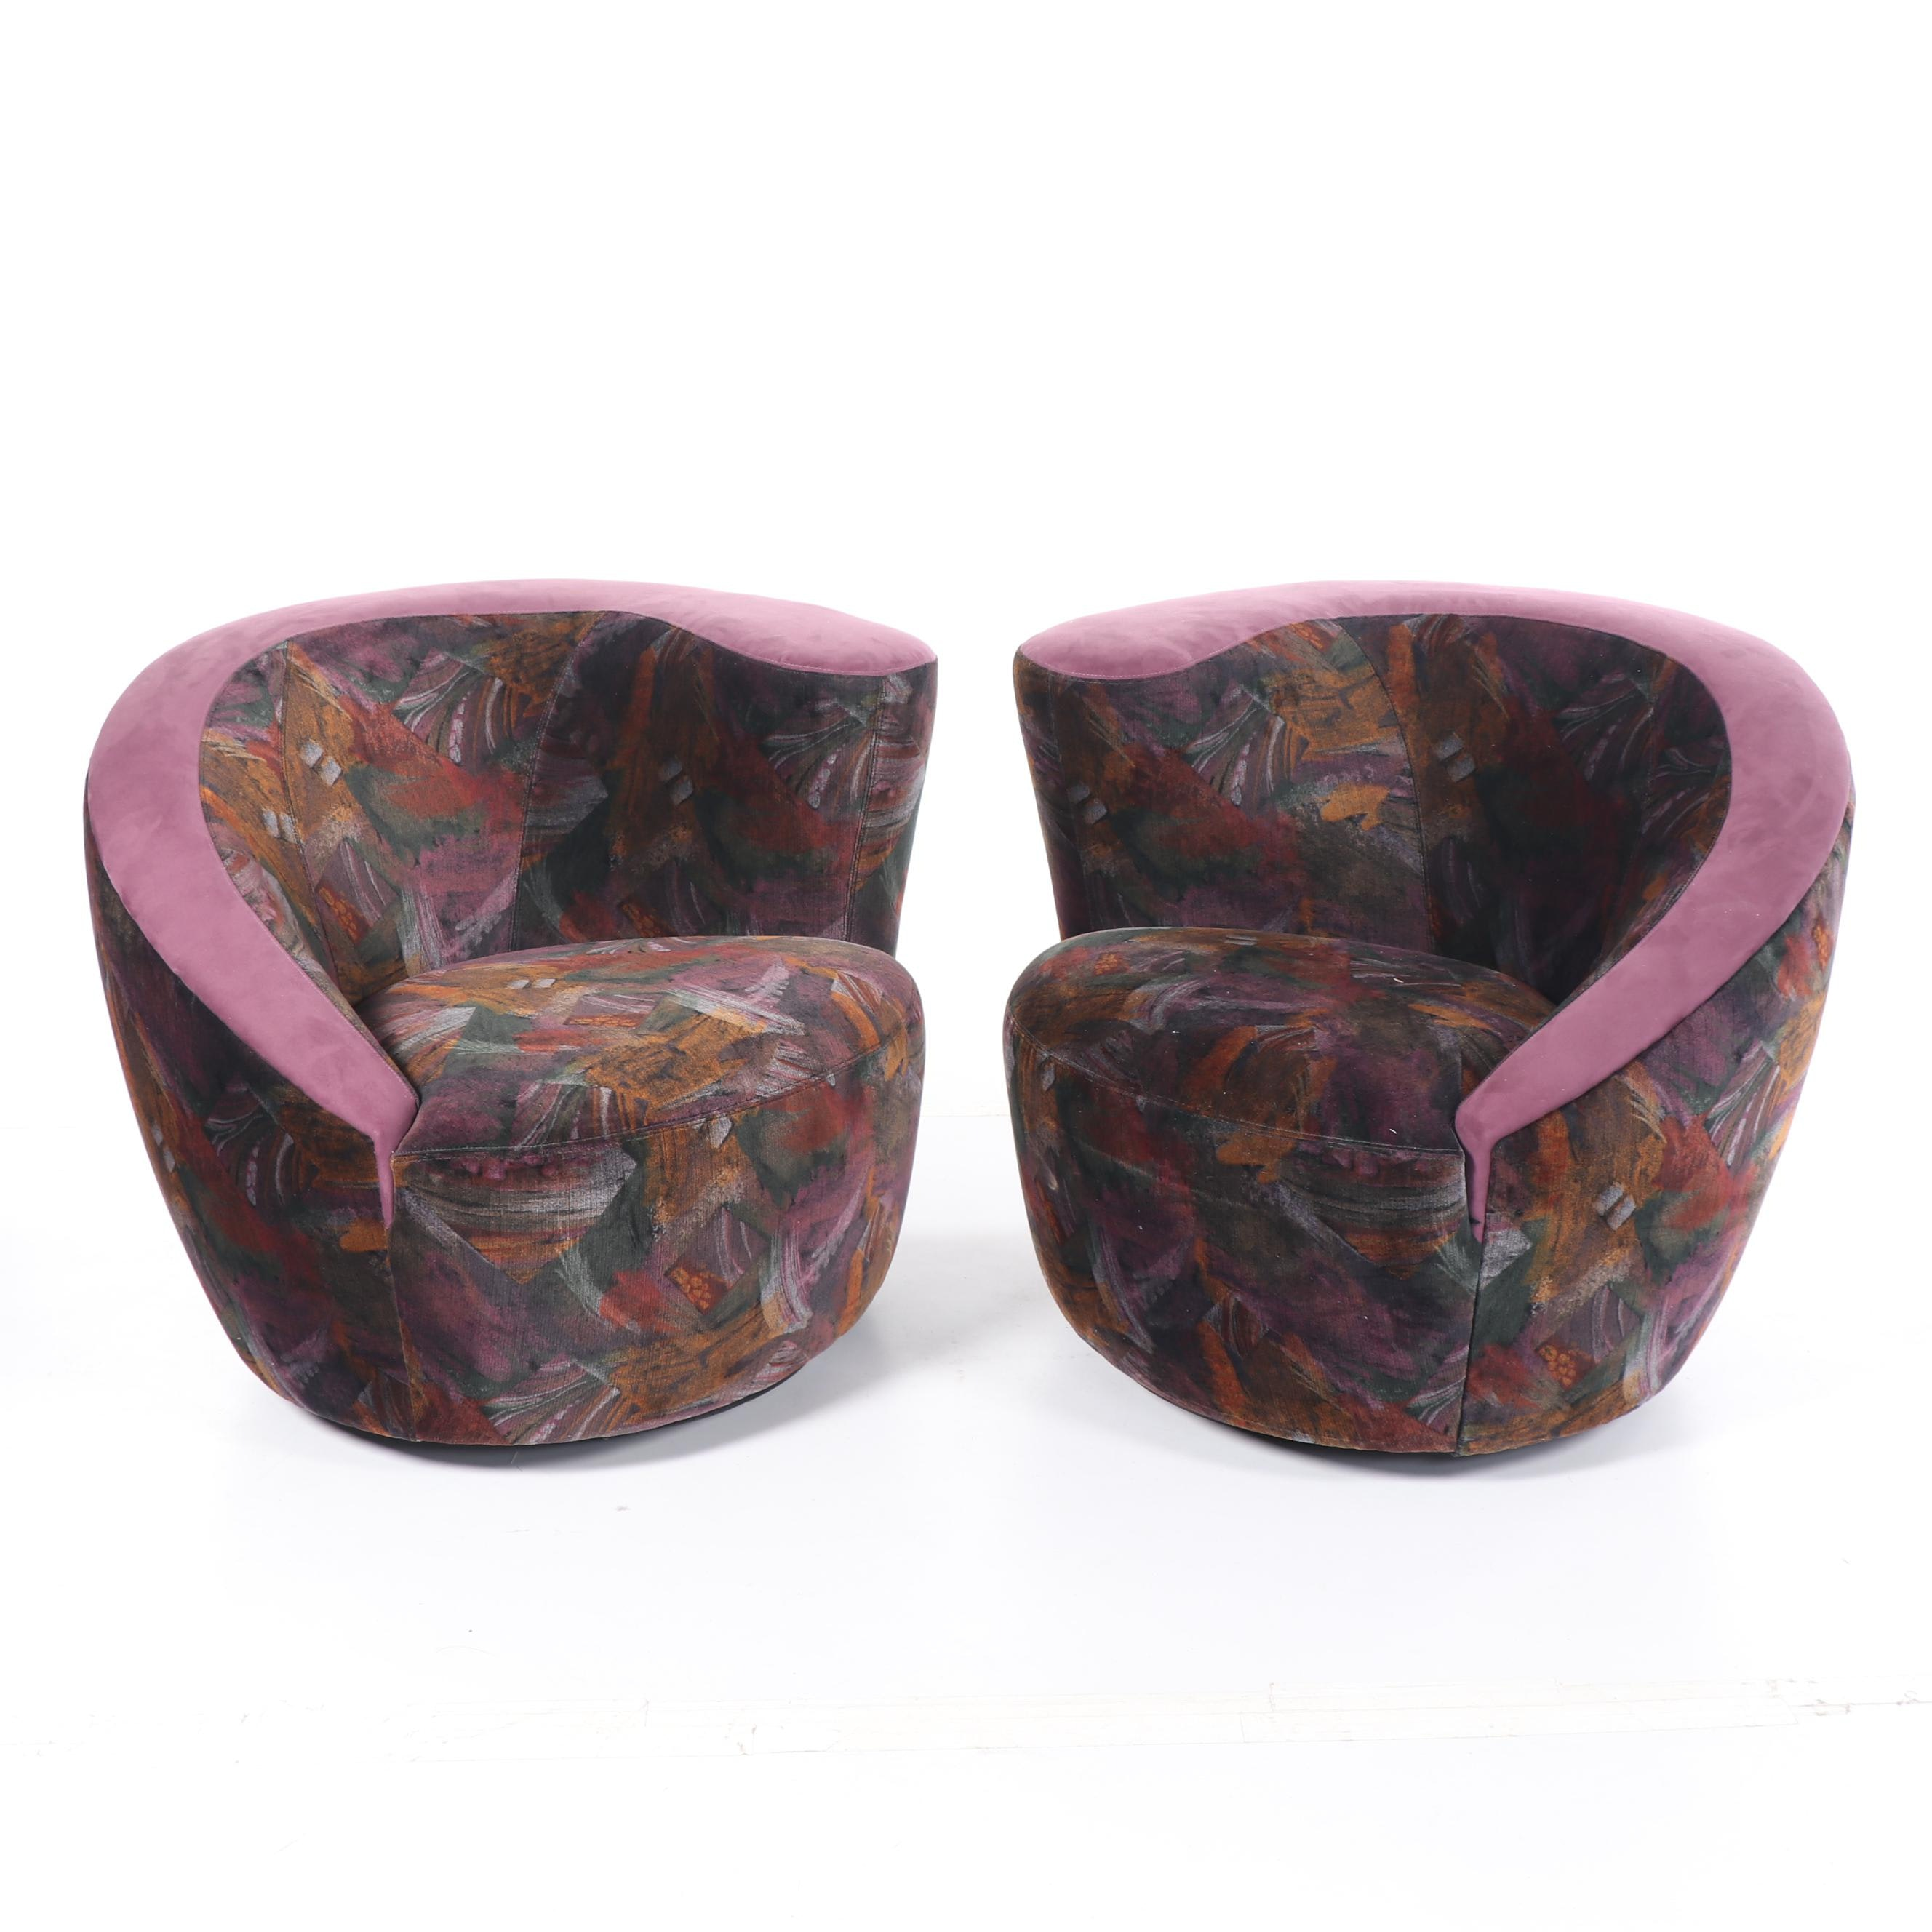 Nautilus Style Upholstered Swivel Chairs, Late 20th Century